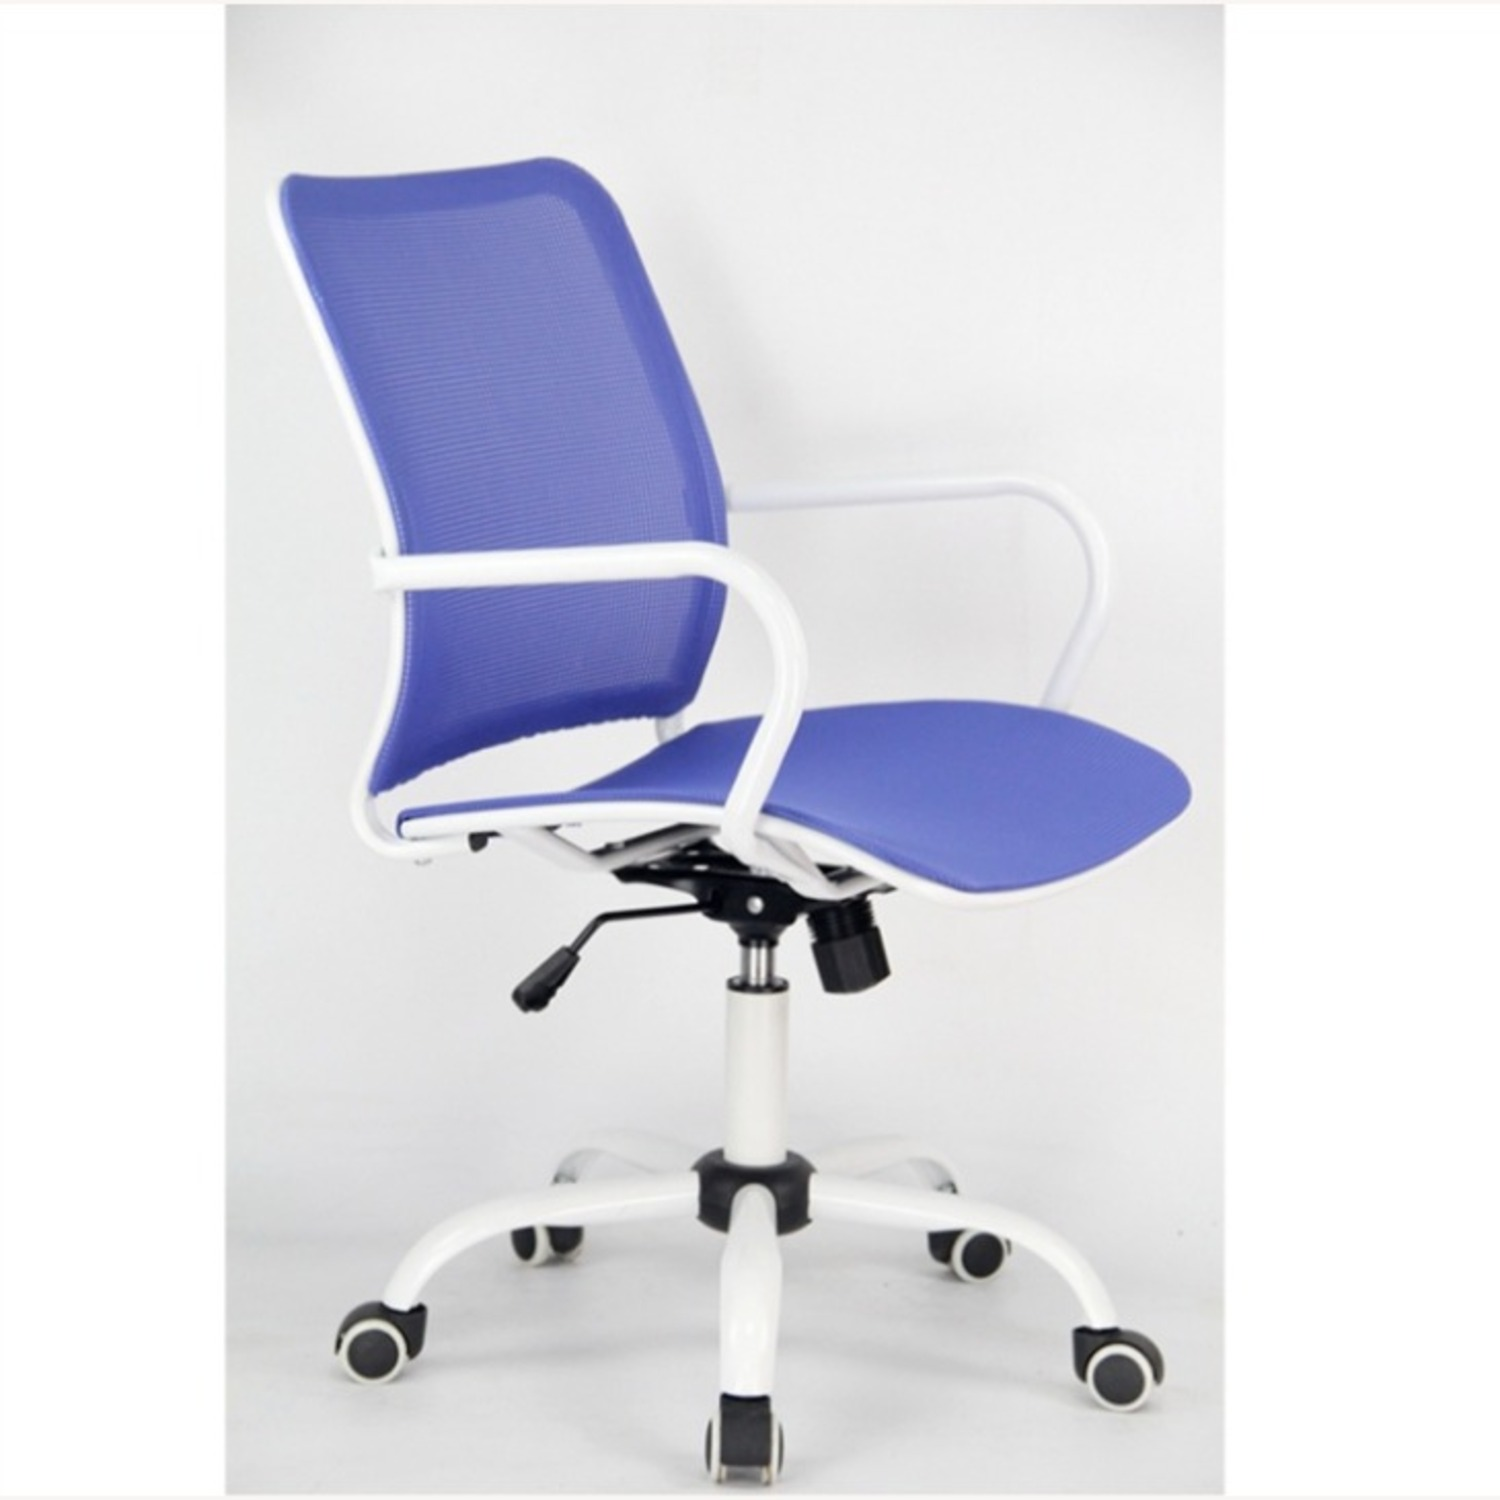 Office Chair In Blue Back & Seat Mesh Finish - image-2